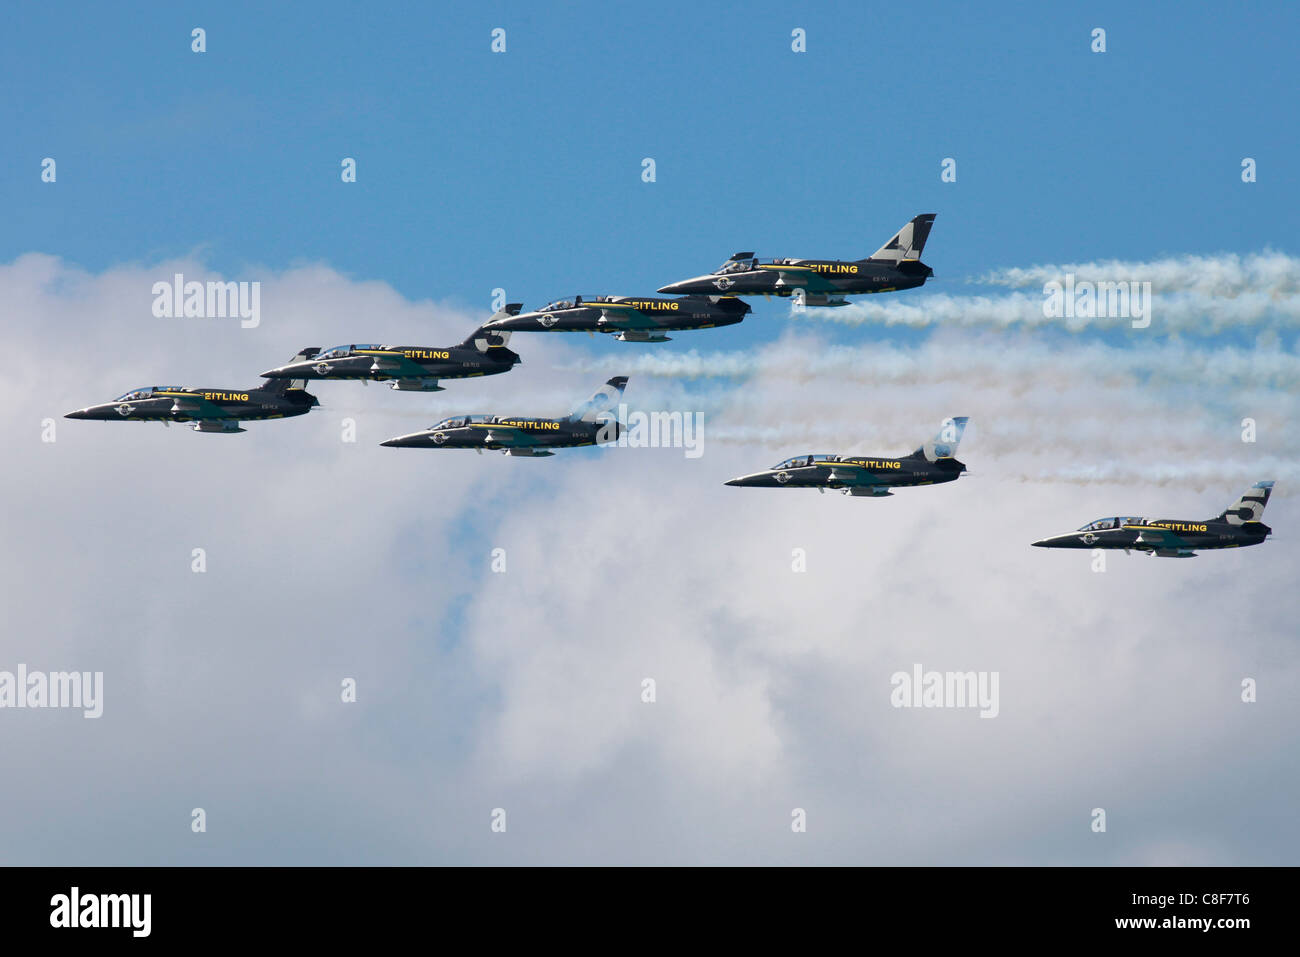 L-39C Albatros aircrafts from the Breitling Jet Team  flying in formation and leaving smoke trails in the sky during Stock Photo